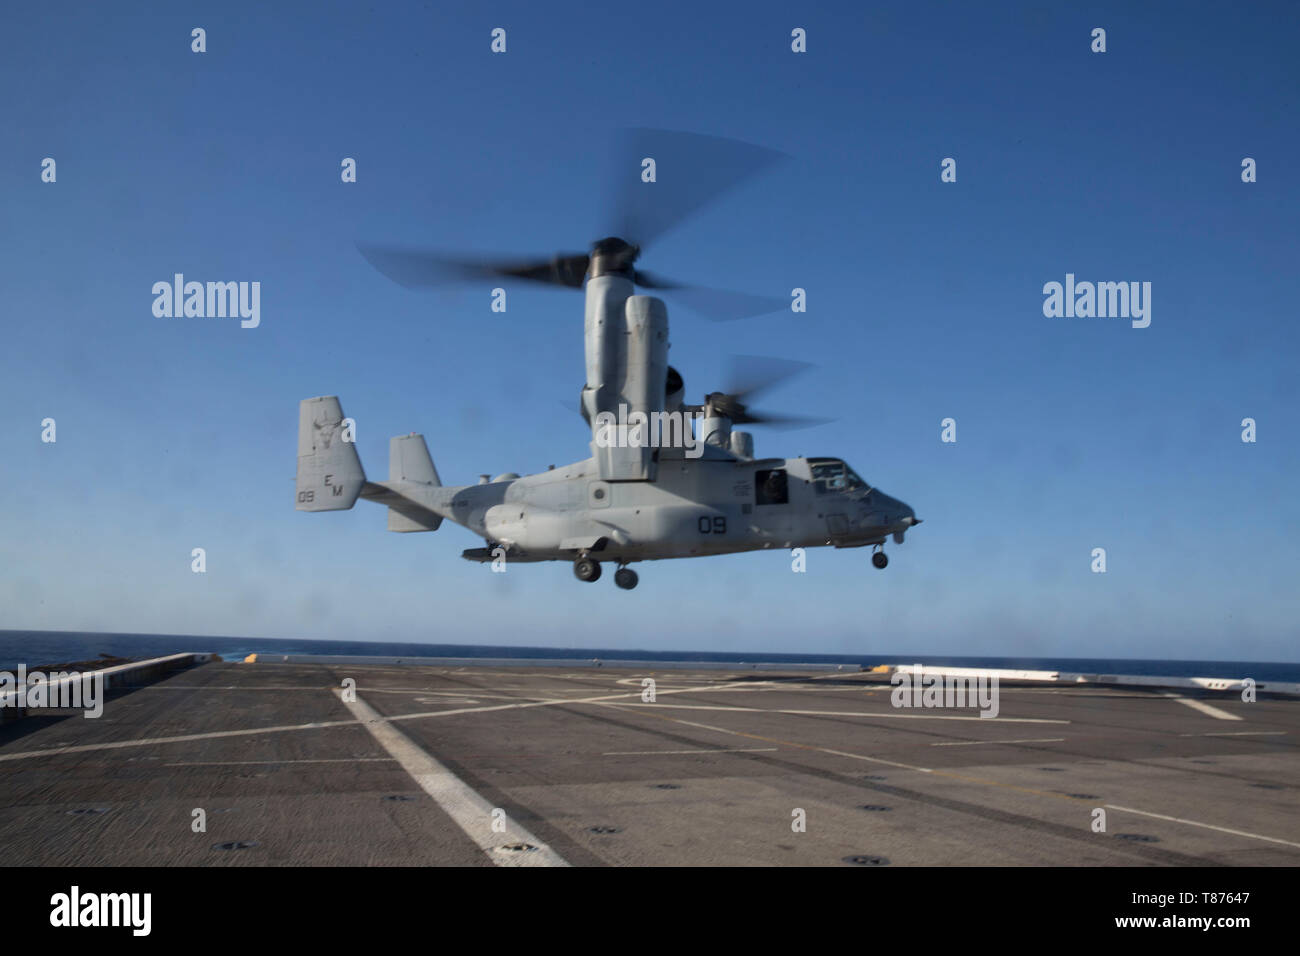 A U.S. Marine Corps MV-22B Osprey with the Special Purpose Marine Air-Ground Task Force-Crisis Response-Africa 19.2, Marine Forces Europe and Africa, takes off of the flight deck aboard the USS Arlington (LPD-24) in the Mediterranean Sea, May 6, 2019. SPMAGTF-CR-AF 19.2 conducted deck-landing qualifications to increase proficiency and decrease crisis-response time for contingencies. SPMAGTF-CR-AF is deployed to conduct crisis-response and theater-security operations in Africa and promote regional stability by conducting military-to-military training exercises throughout Europe and Africa. (U.S Stock Photo